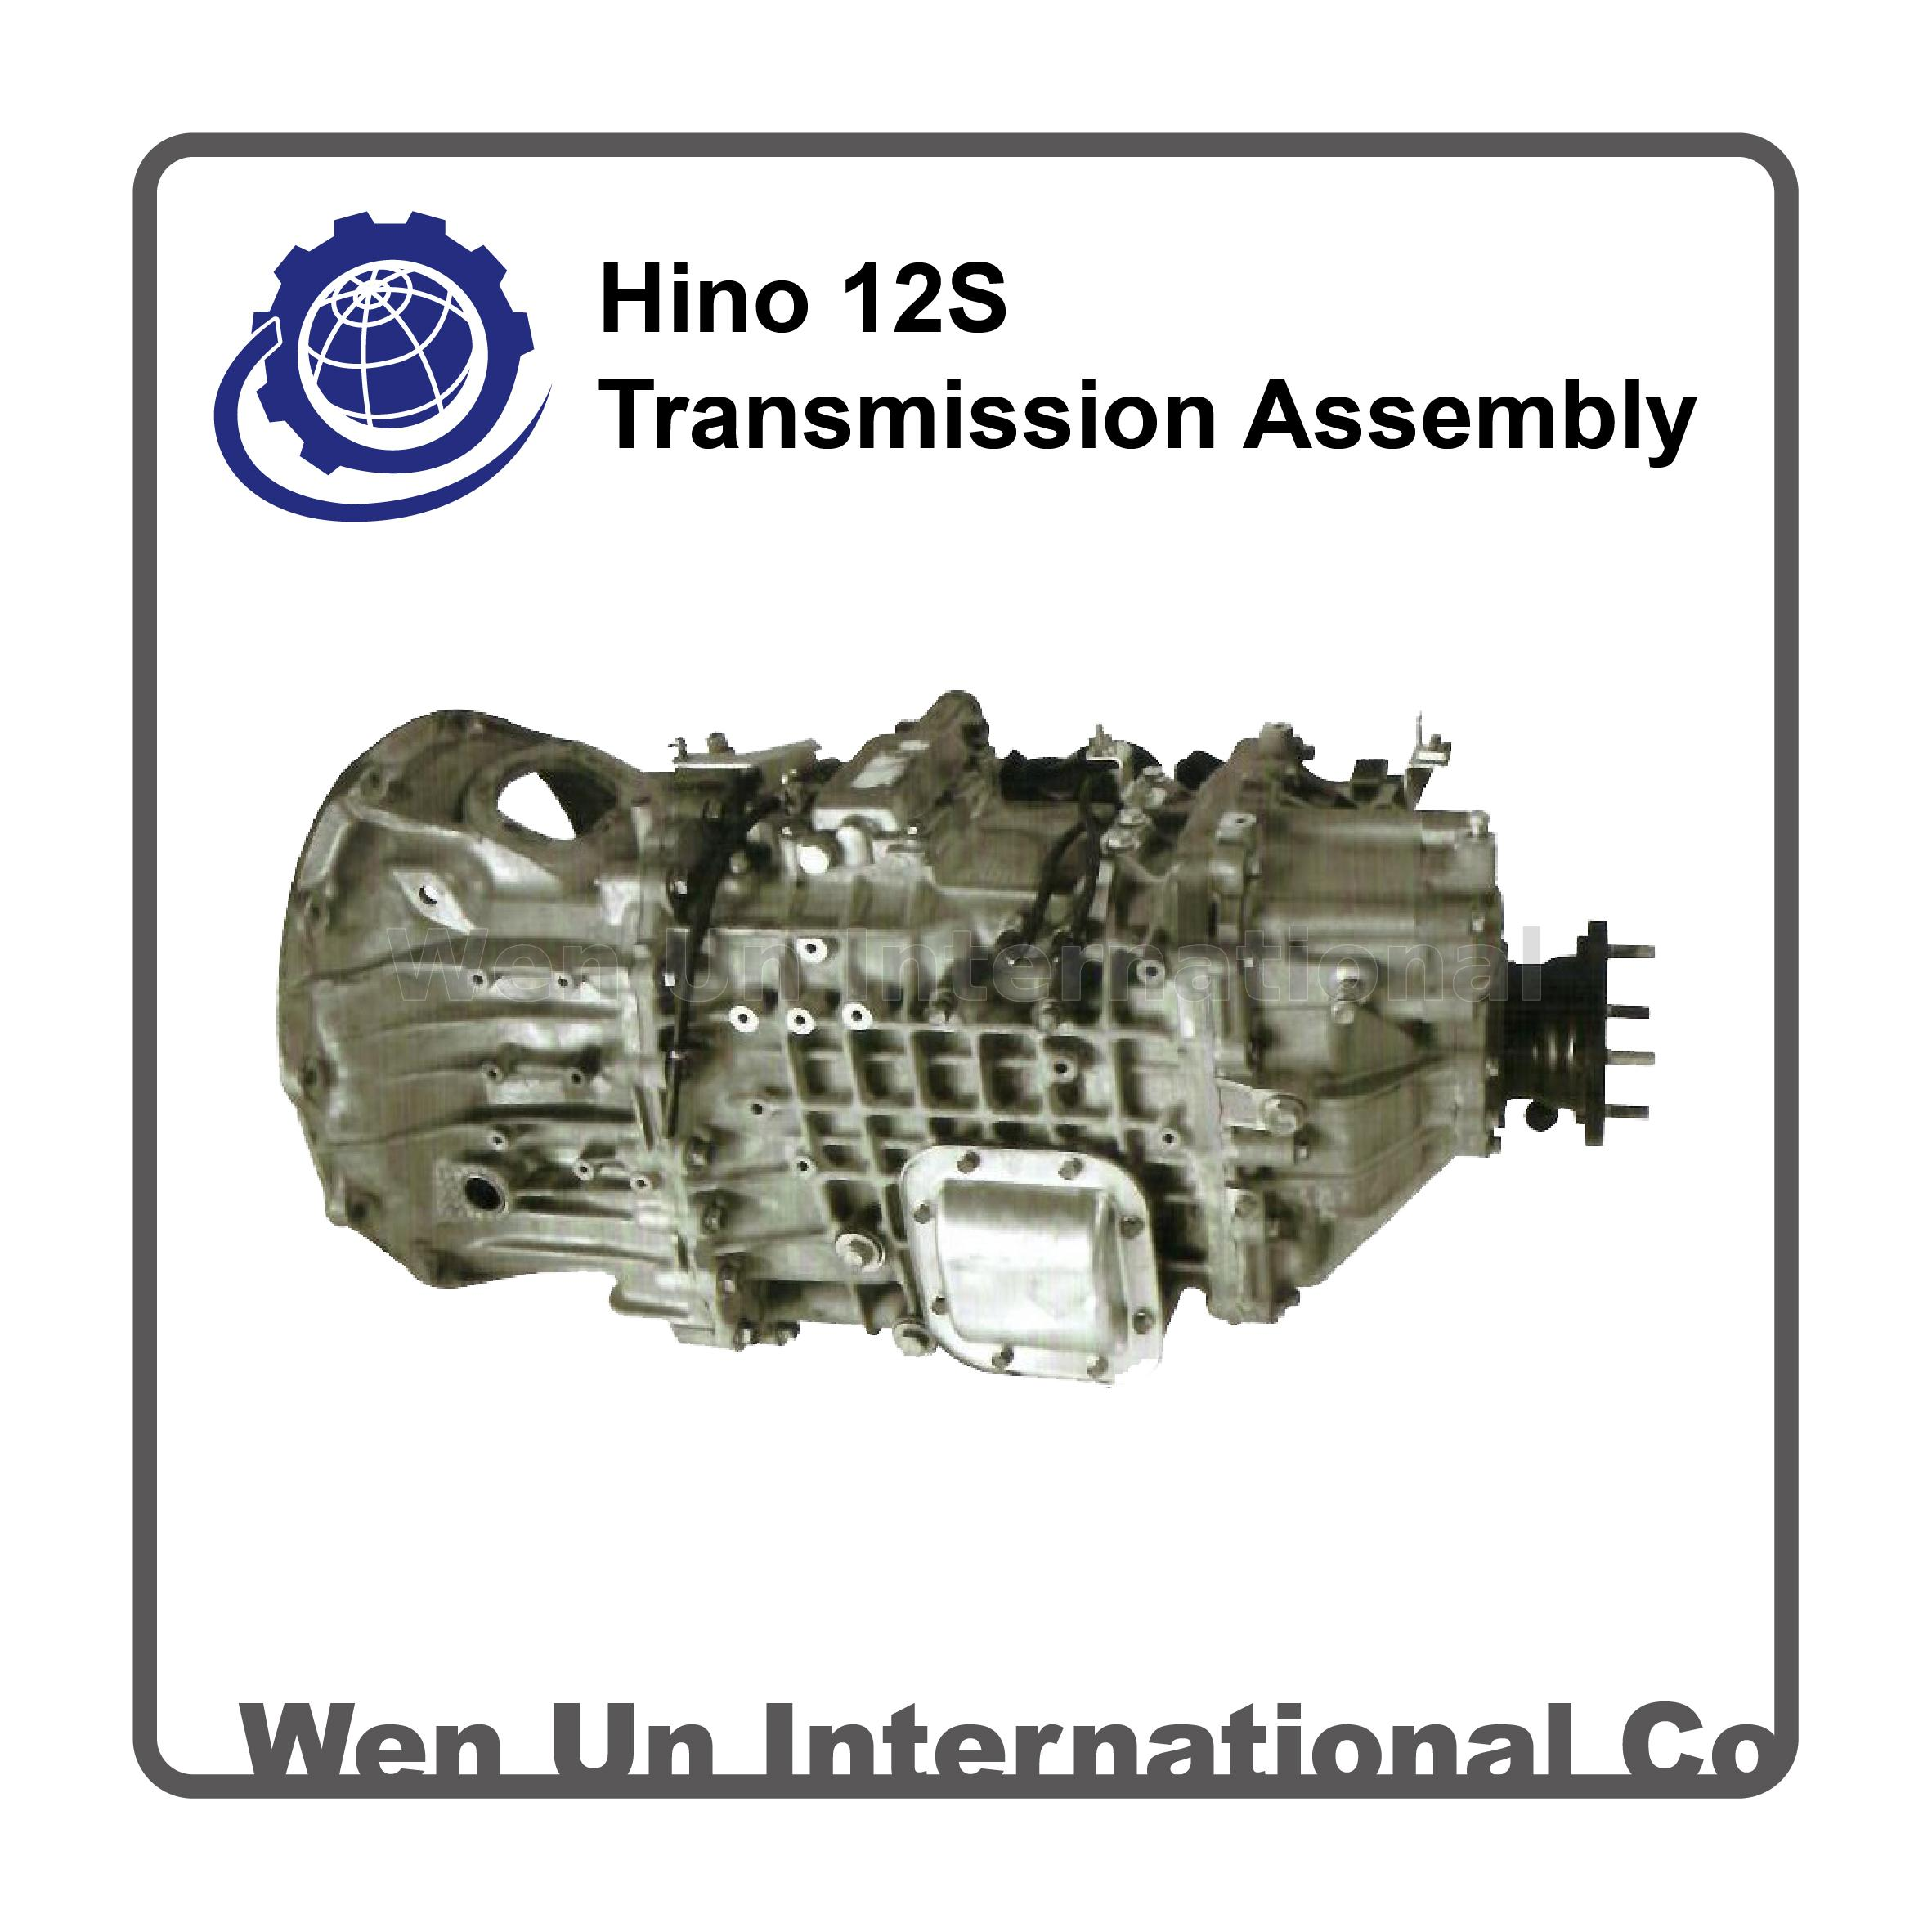 Taiwan Transmission Engine Assembly for Hino 12S   Taiwantrade